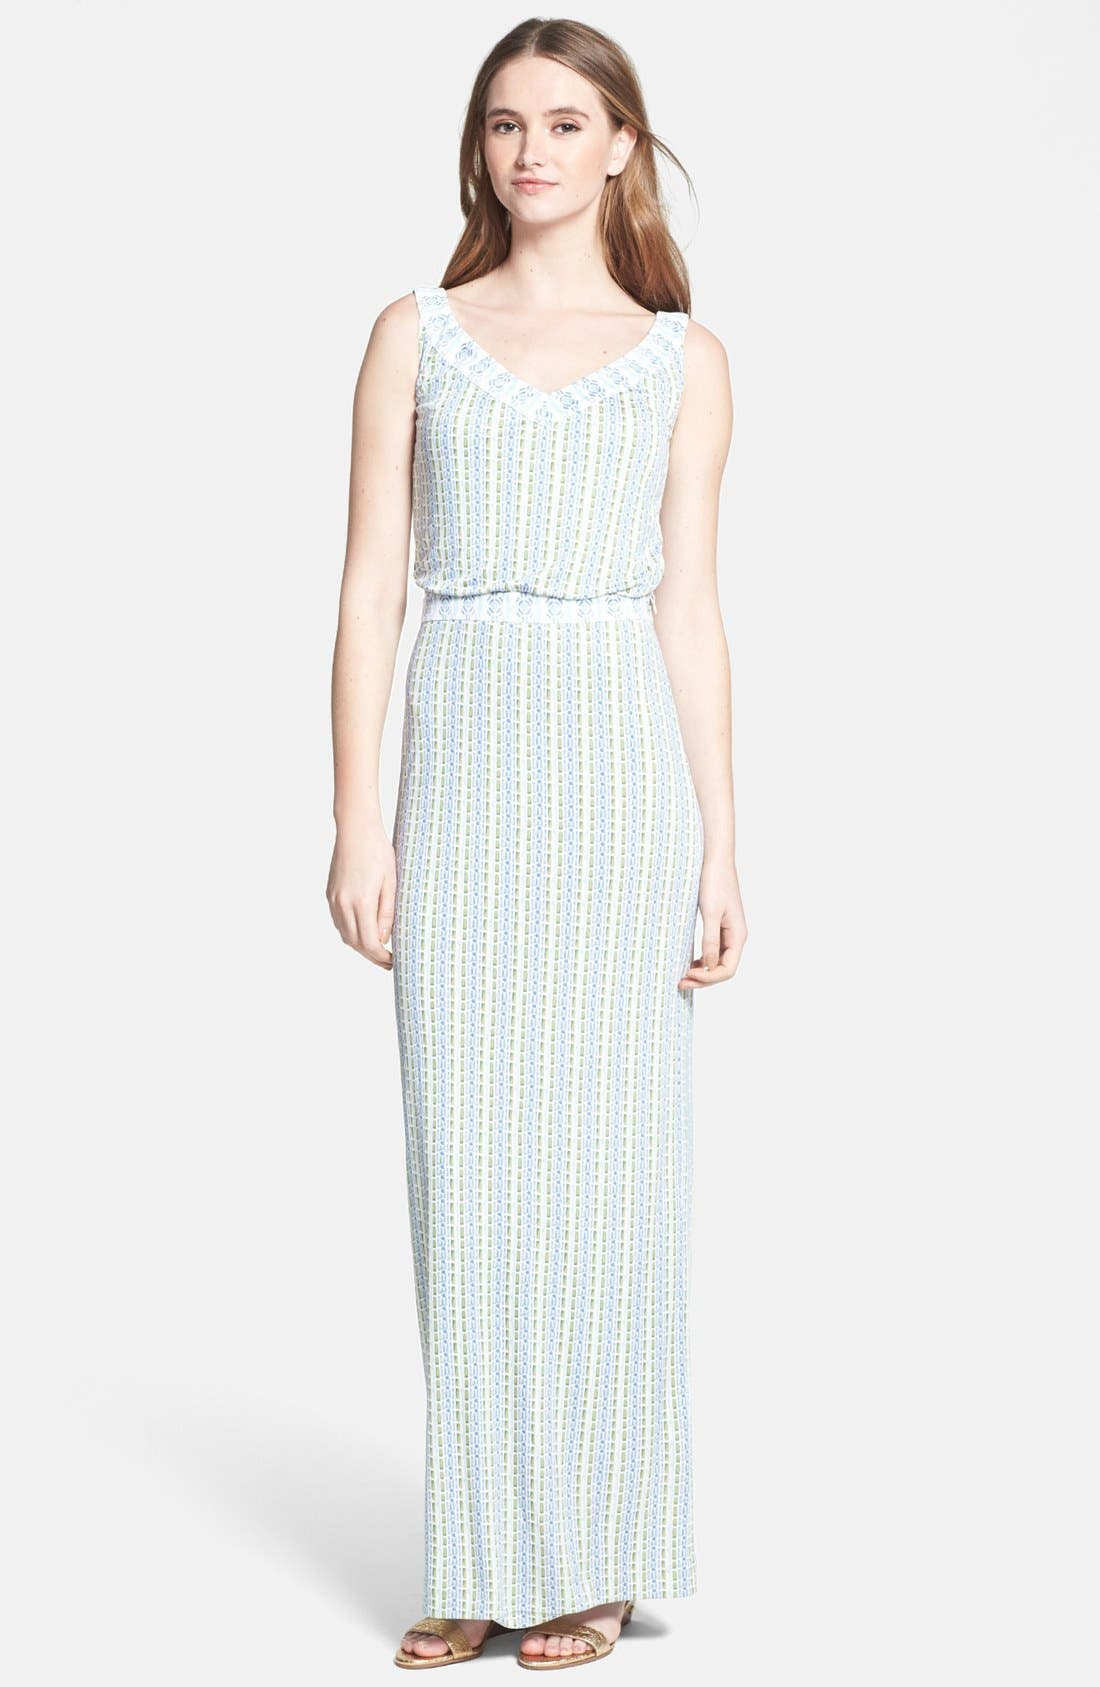 Main Image - Tory Burch 'Micky' Silk Blouson Maxi Dress